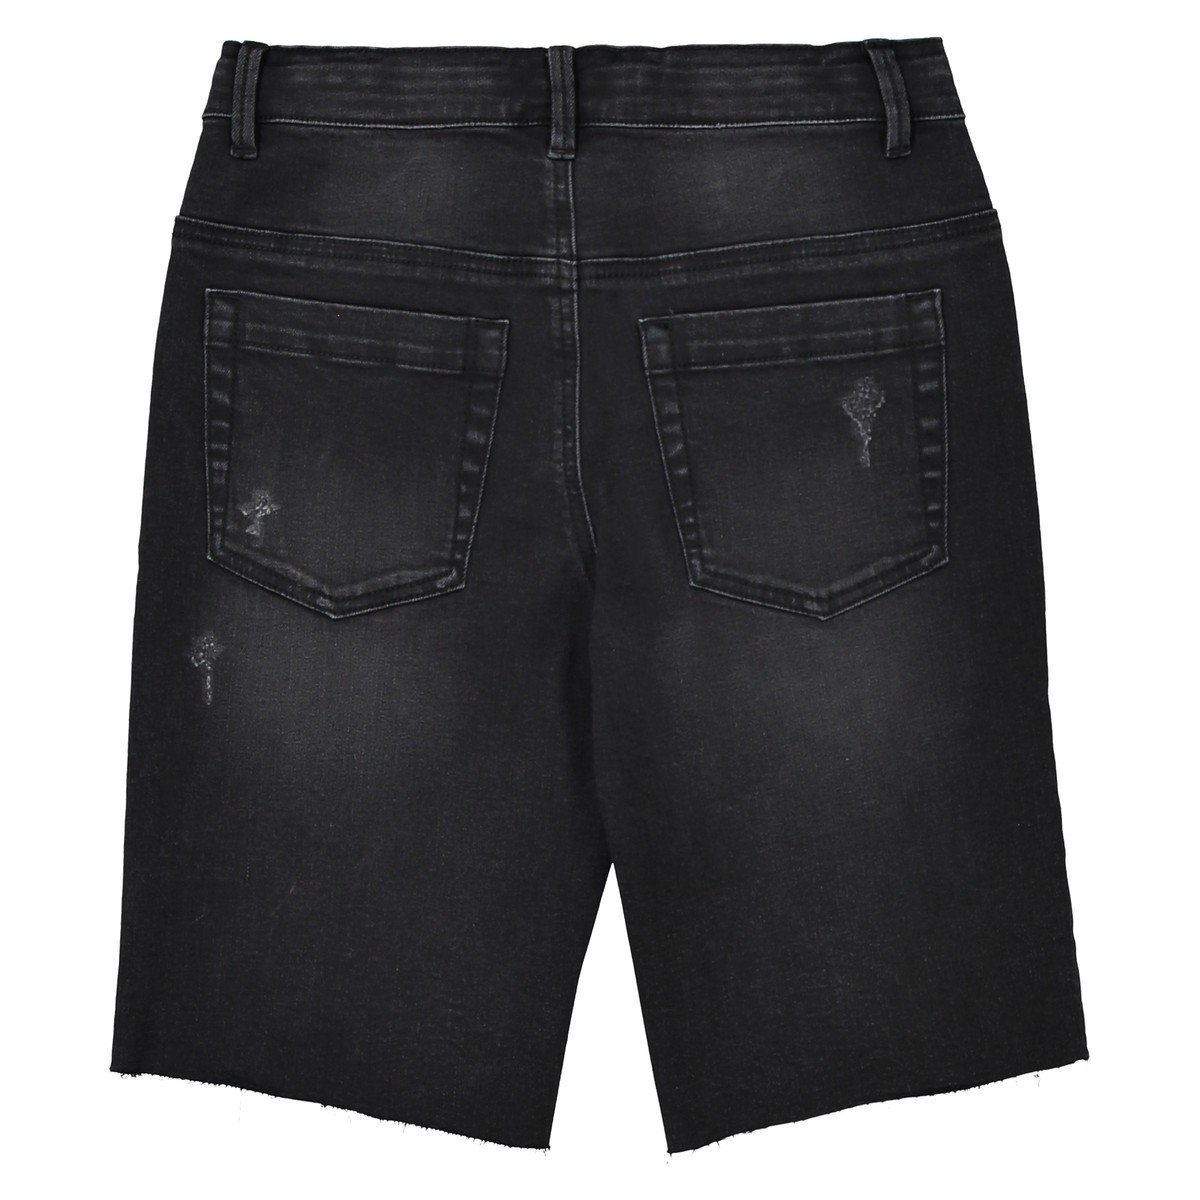 La Redoute Collections Big Boys Distressed Denim Bermuda Shorts 10-16 Years